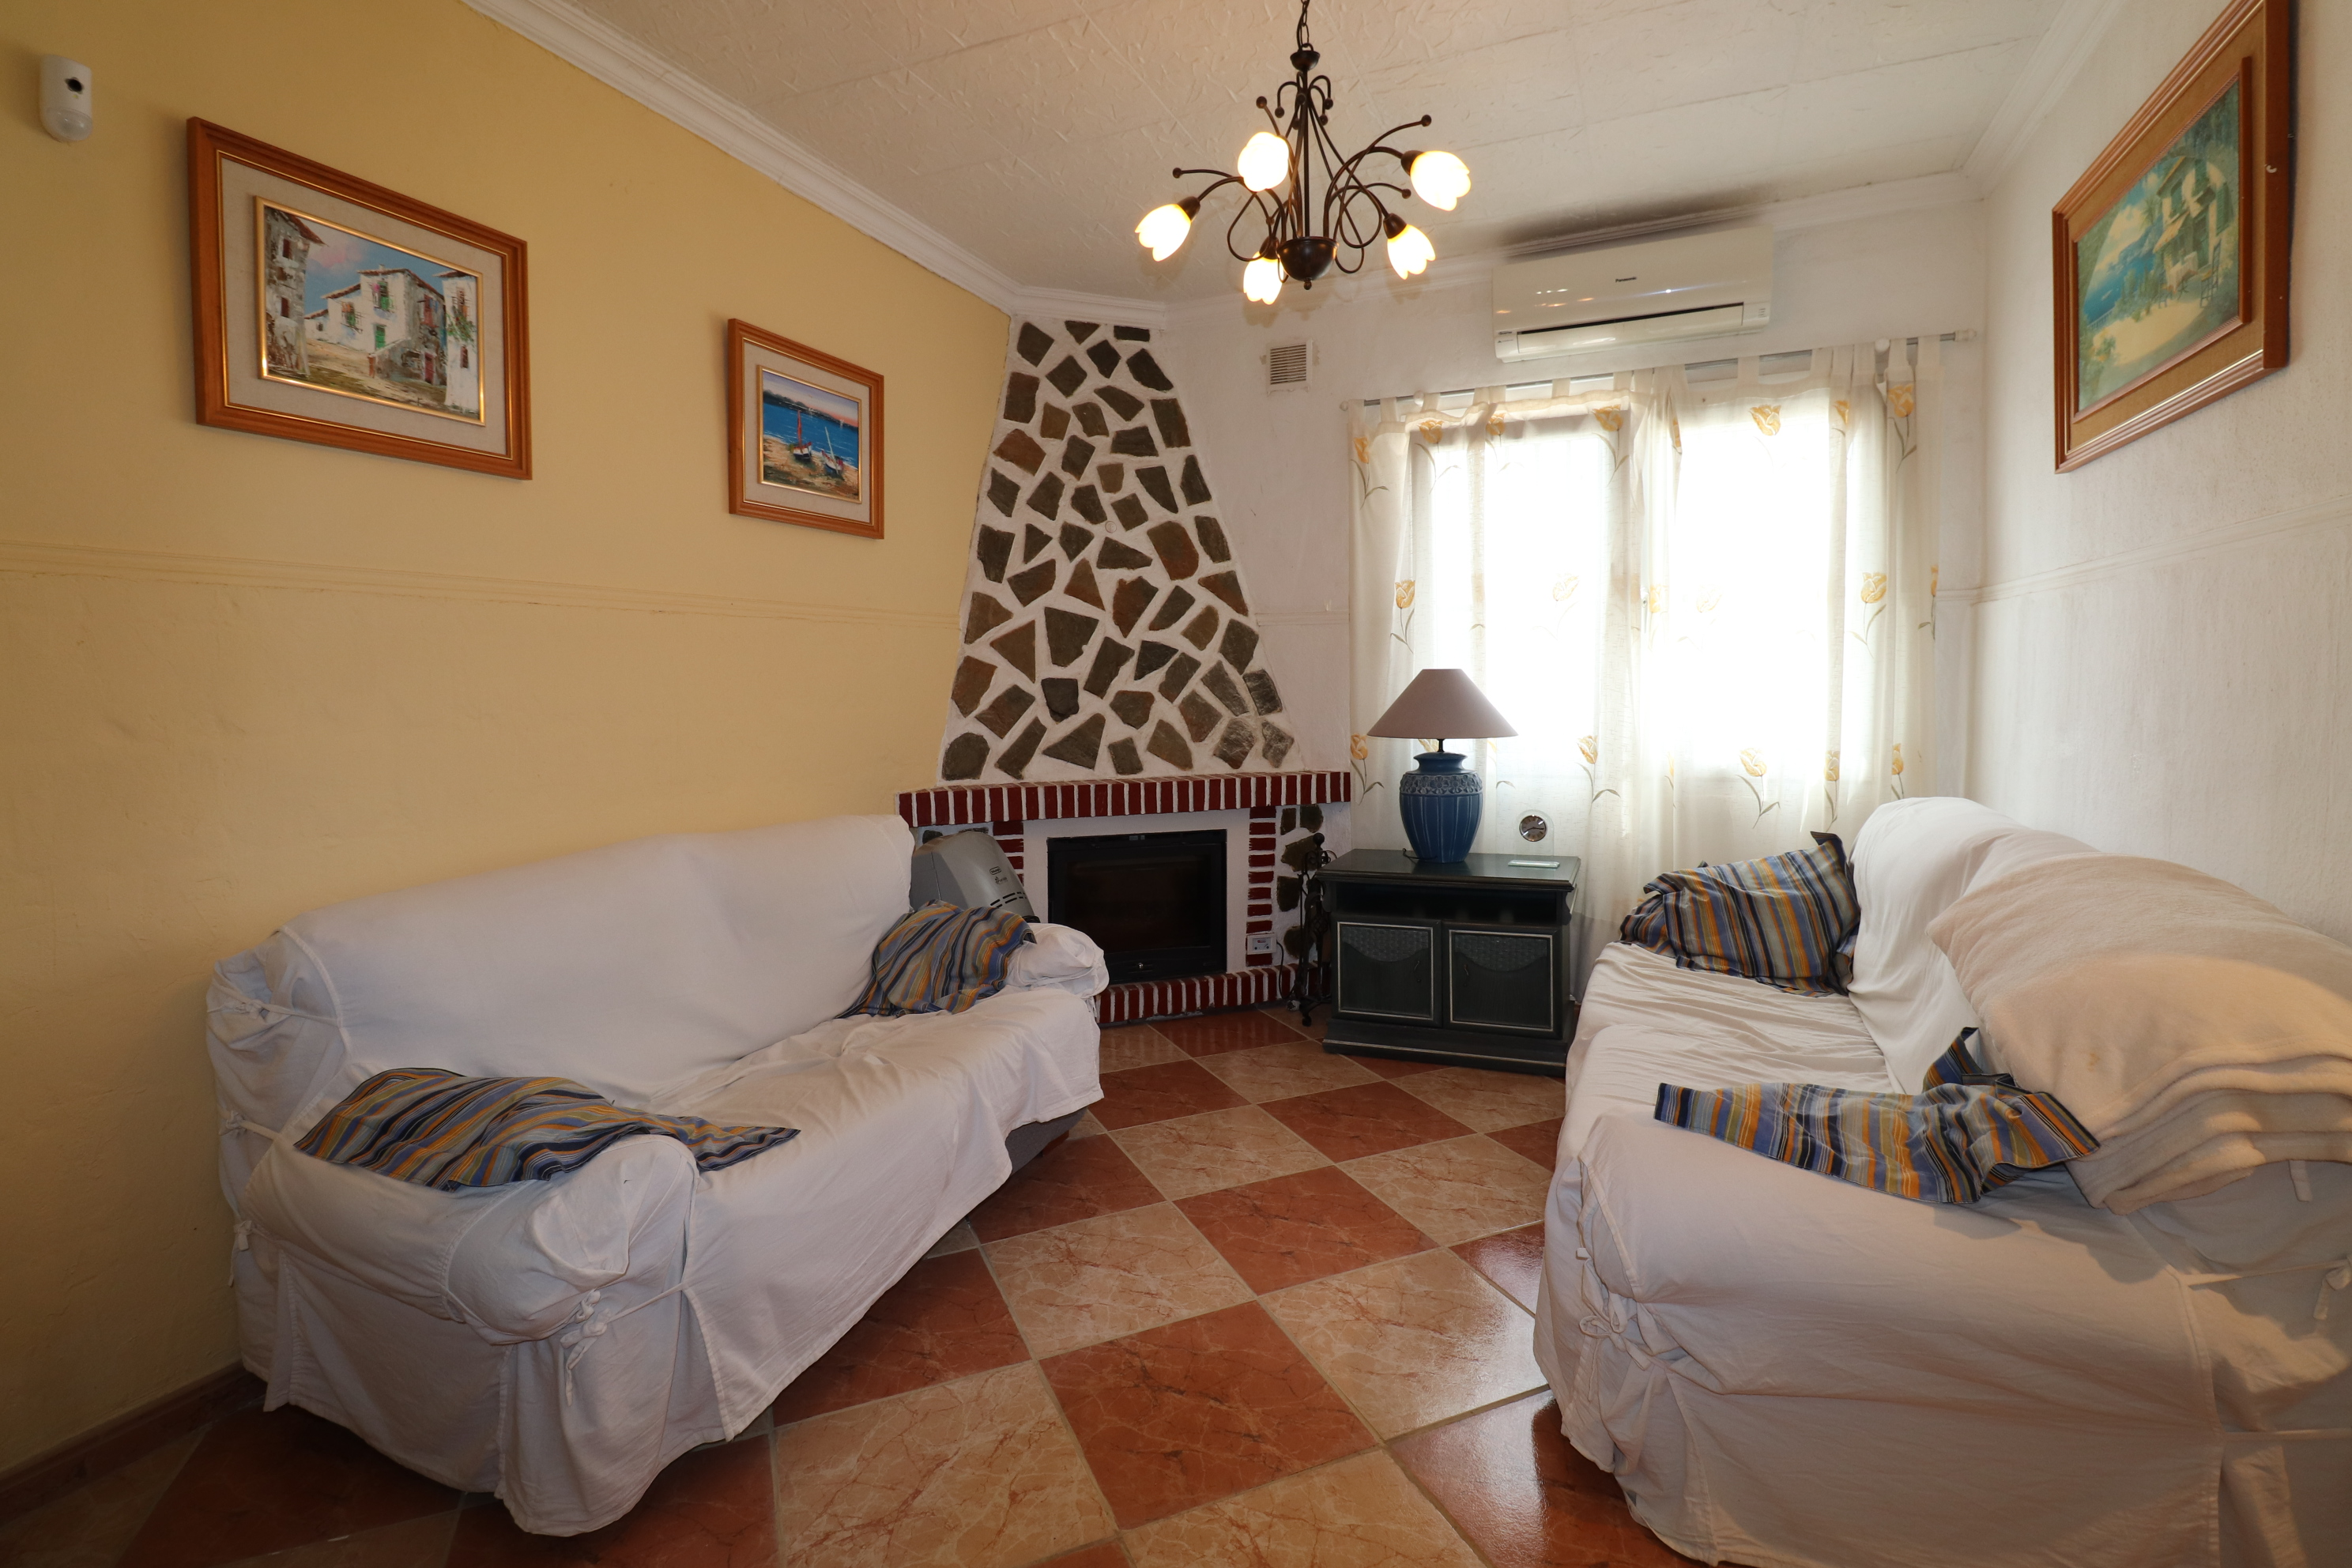 4 bed Country Property in Heredades - Country image 3